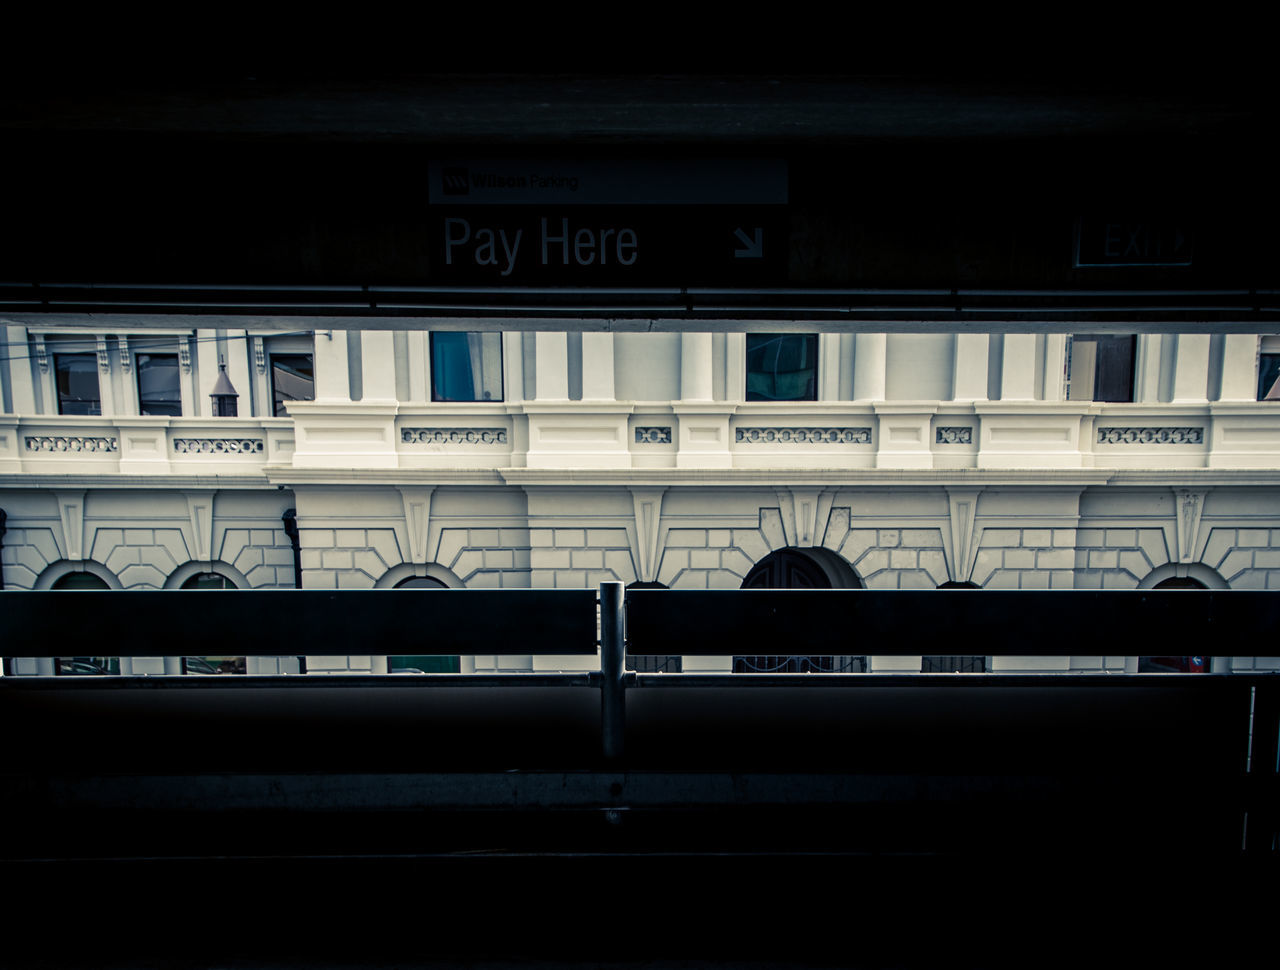 transportation, architecture, text, public transportation, built structure, rail transportation, no people, train - vehicle, communication, railroad station, travel, indoors, day, building exterior, close-up